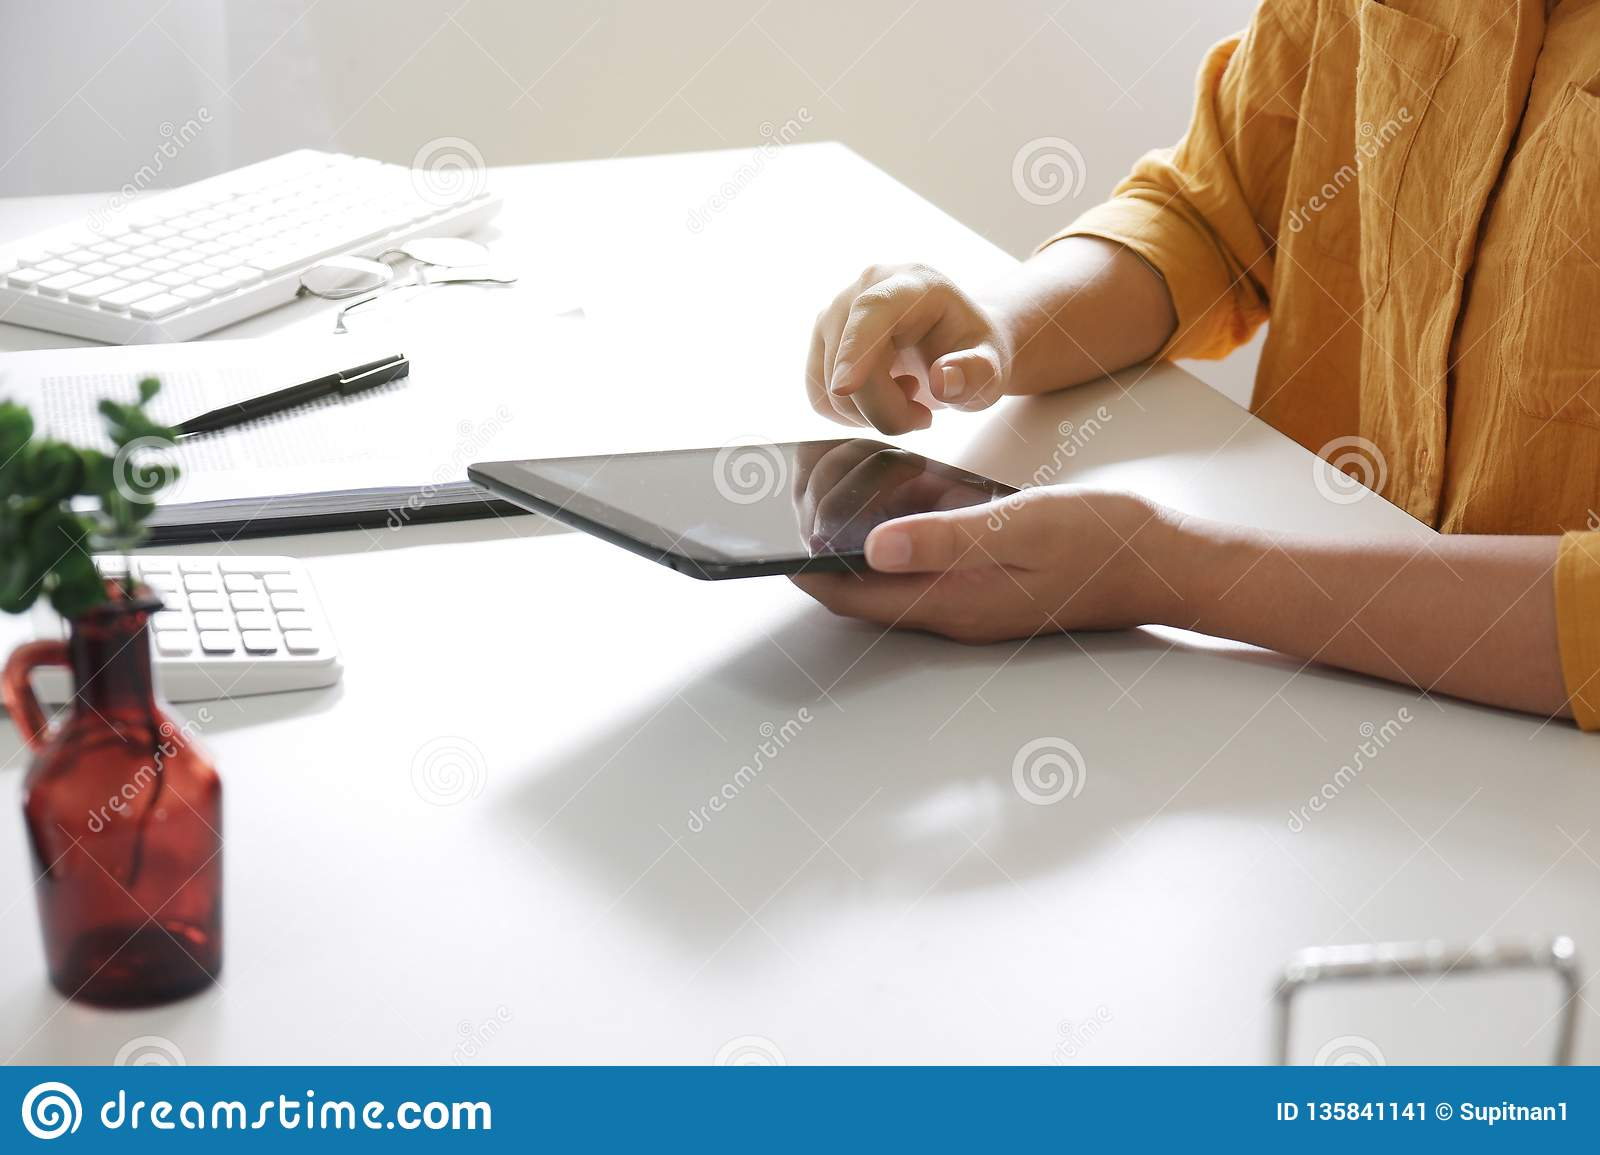 women using tablet while working in her office.